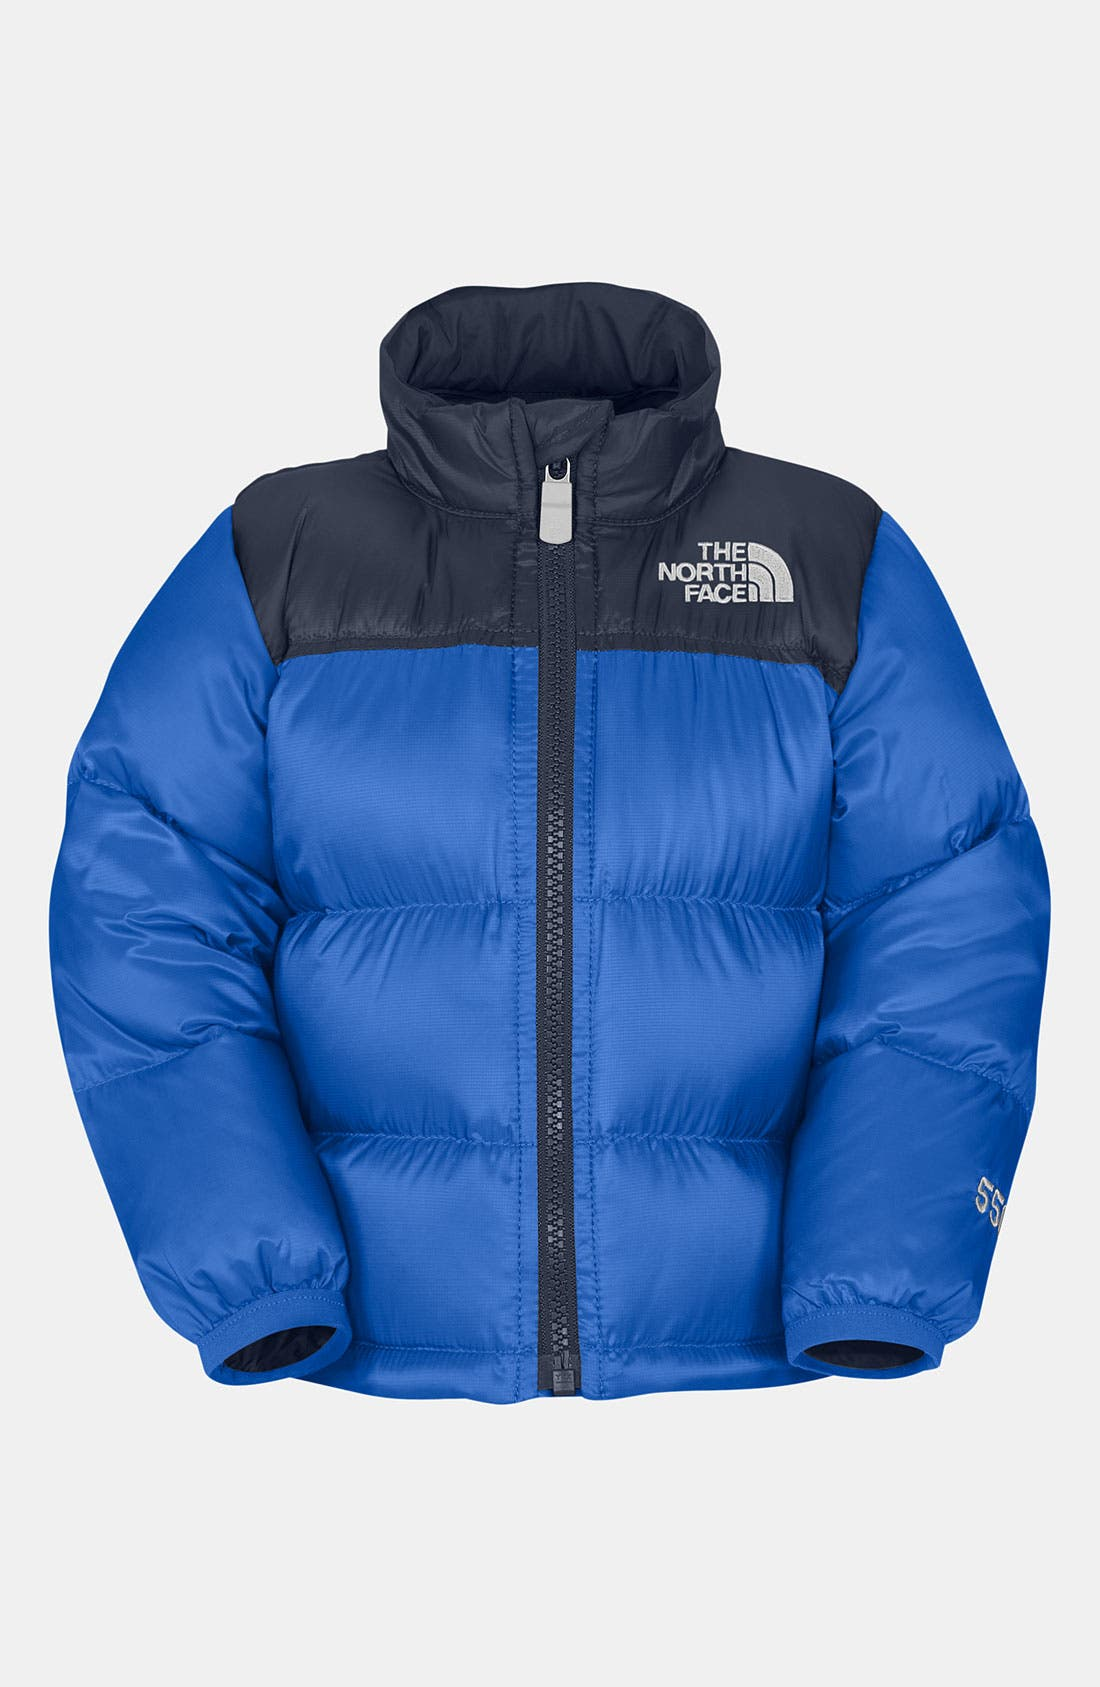 Main Image - The North Face 'Nuptse - Throwback' Jacket (Infant)